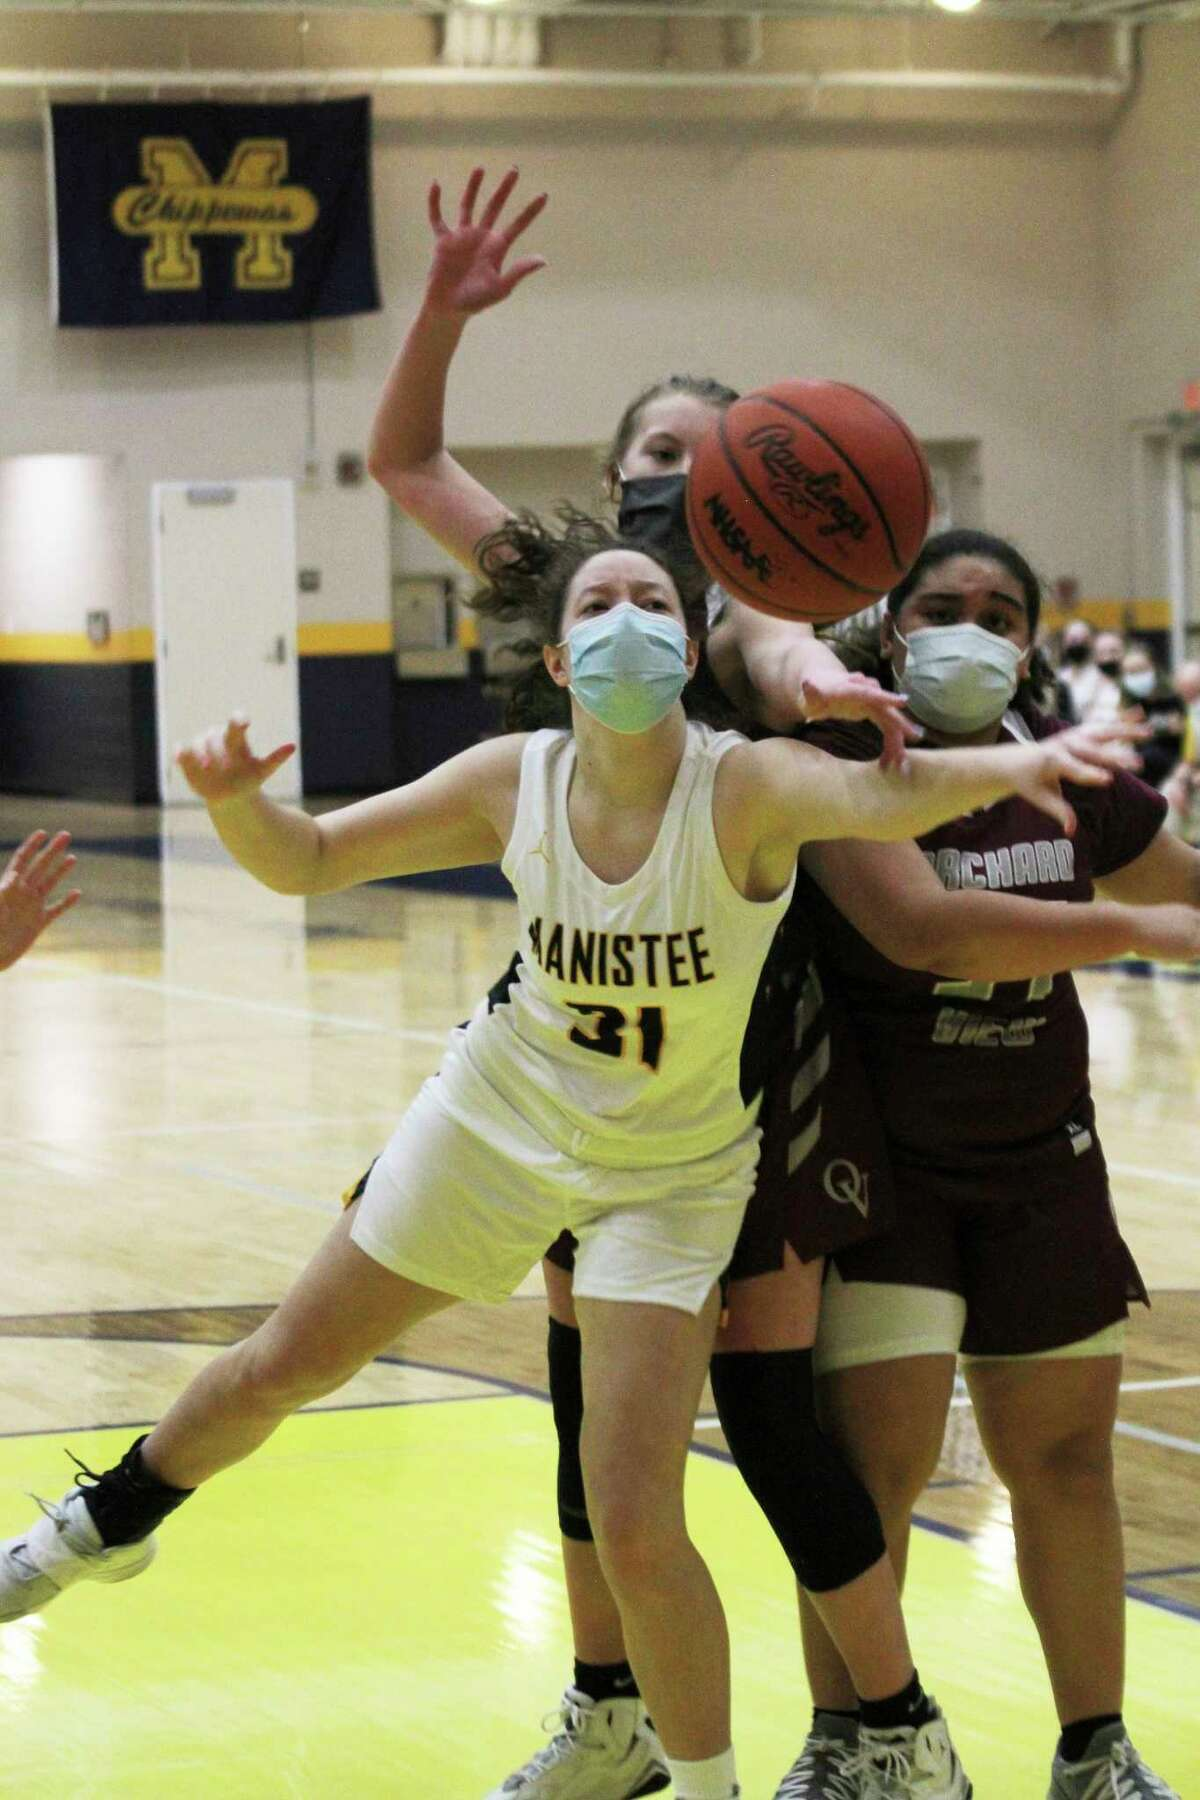 Manistee's Abigail Robinson eyes a loose ball Tuesday night in the Chippewas' victory over Orchard View. (Dylan Savela/News Advocate)